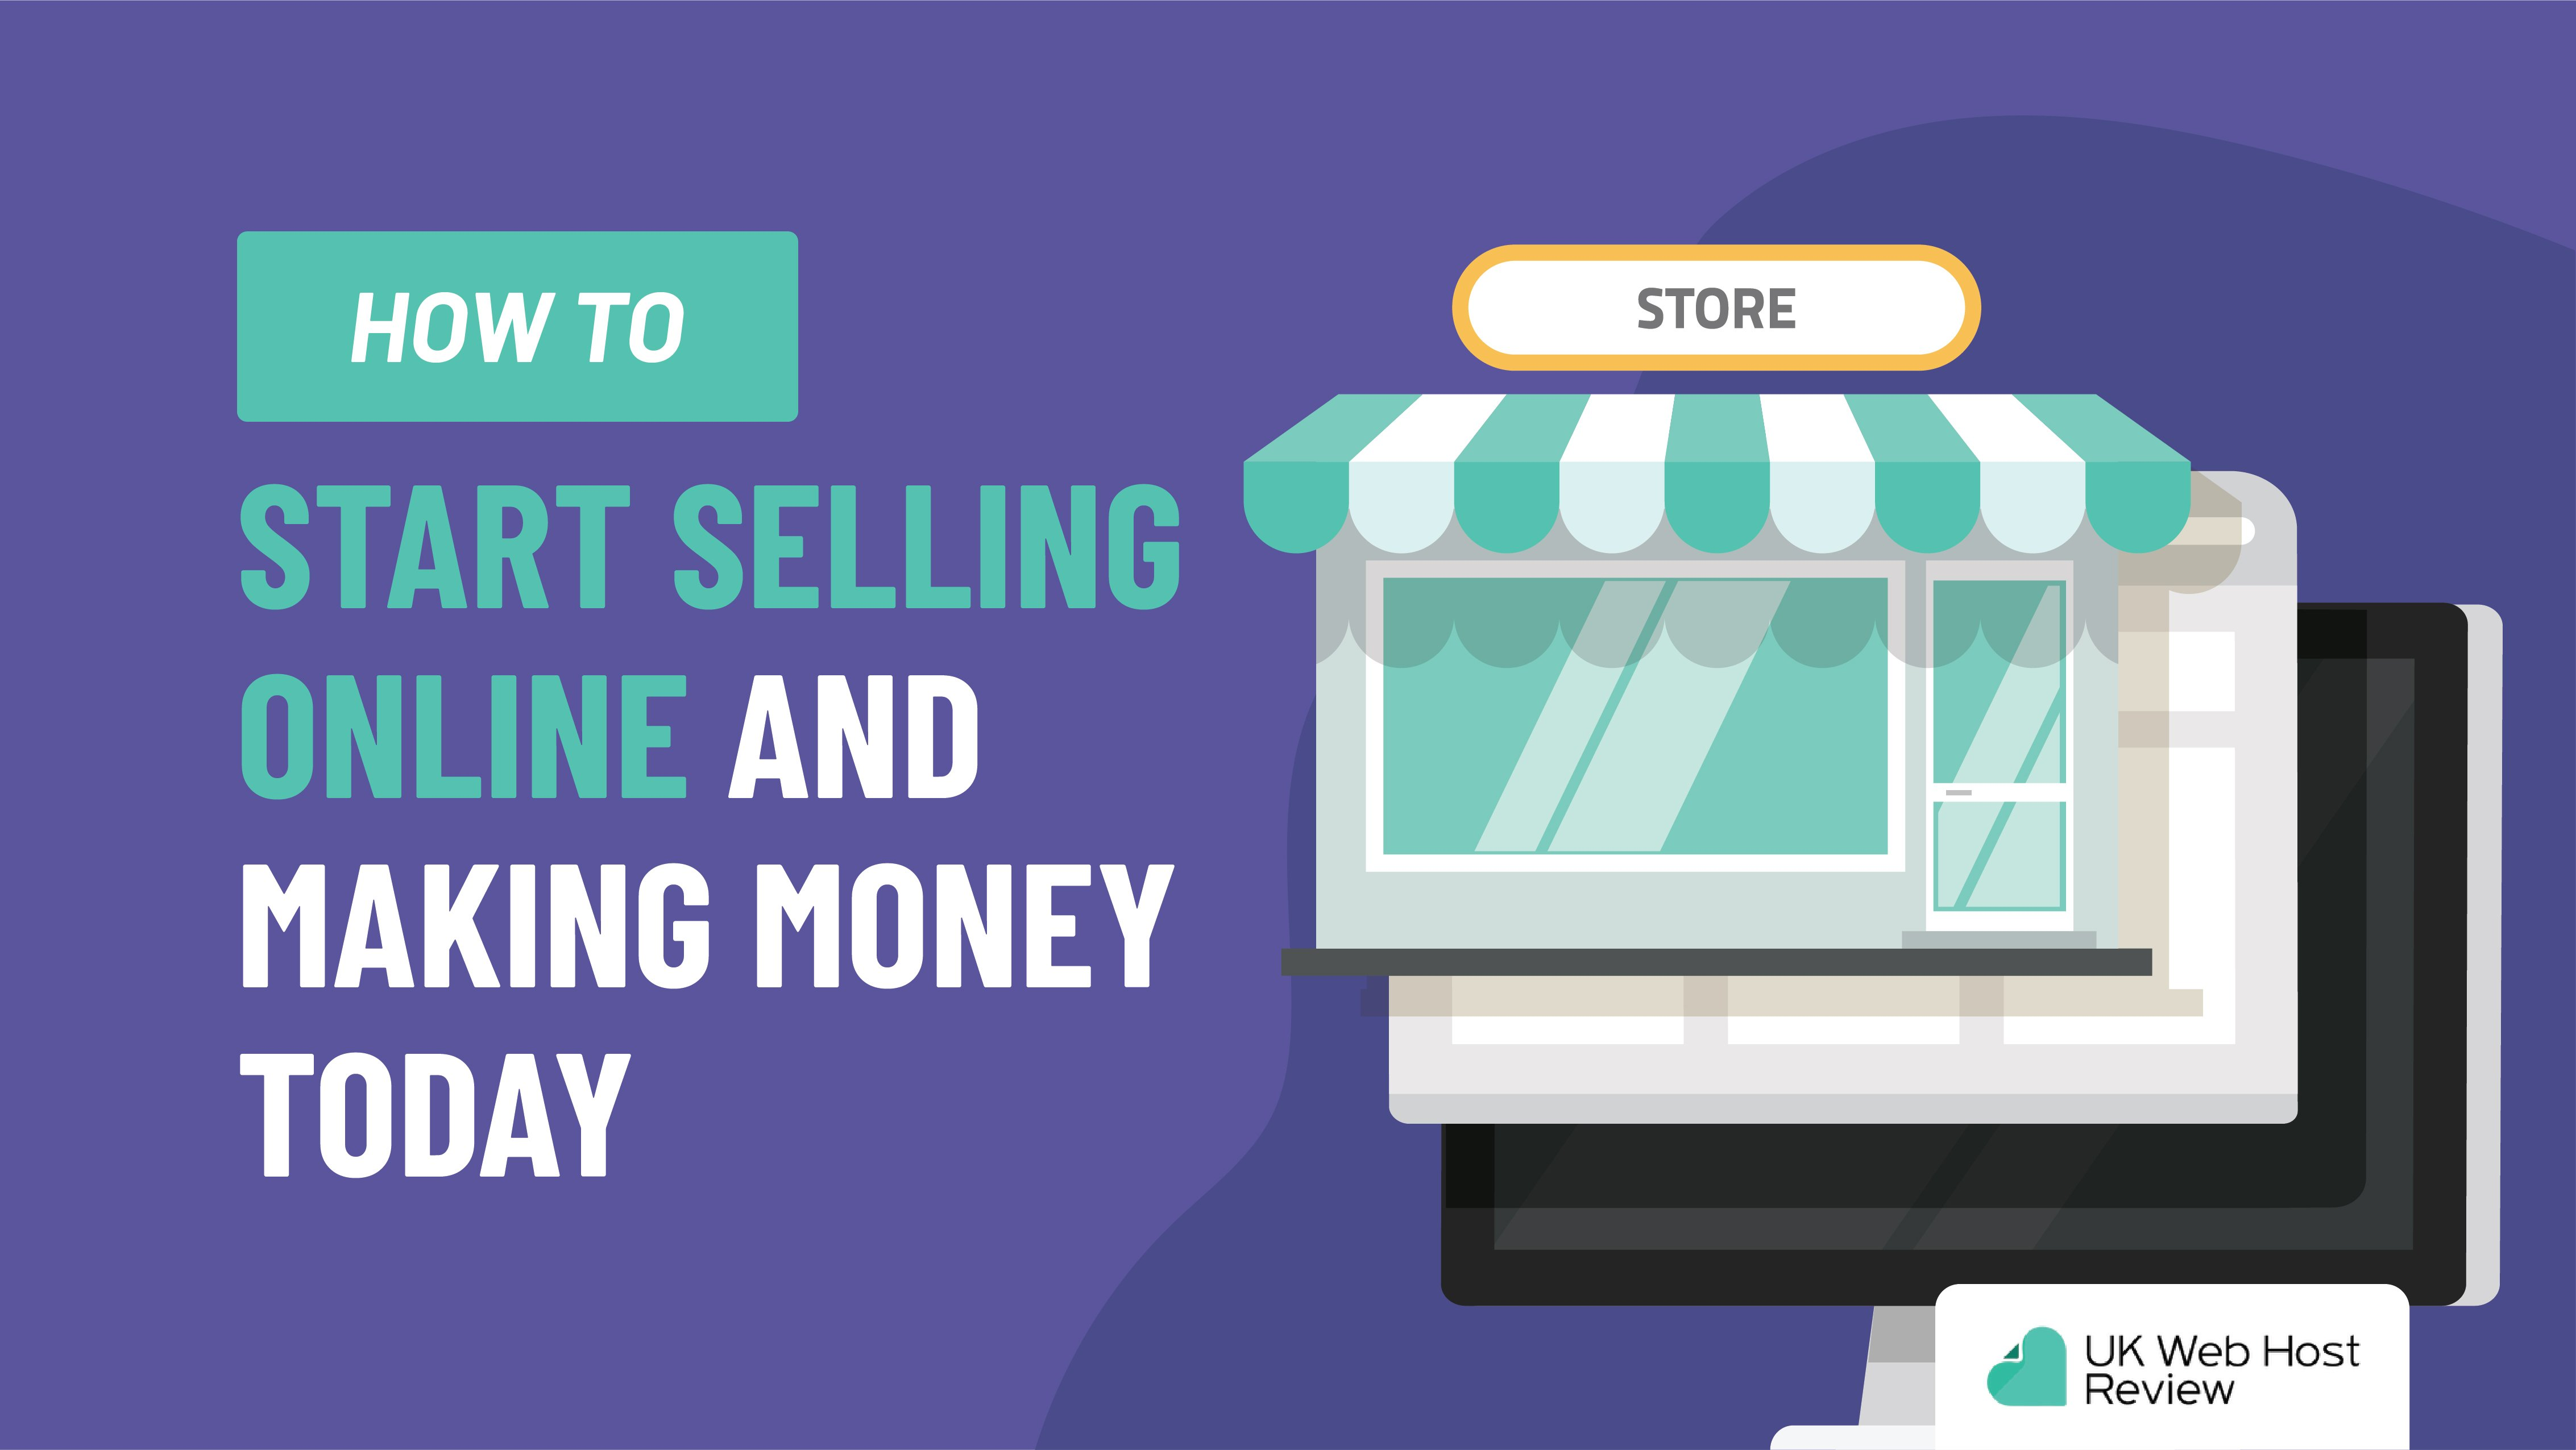 How to Start Selling Online and Making Money Today